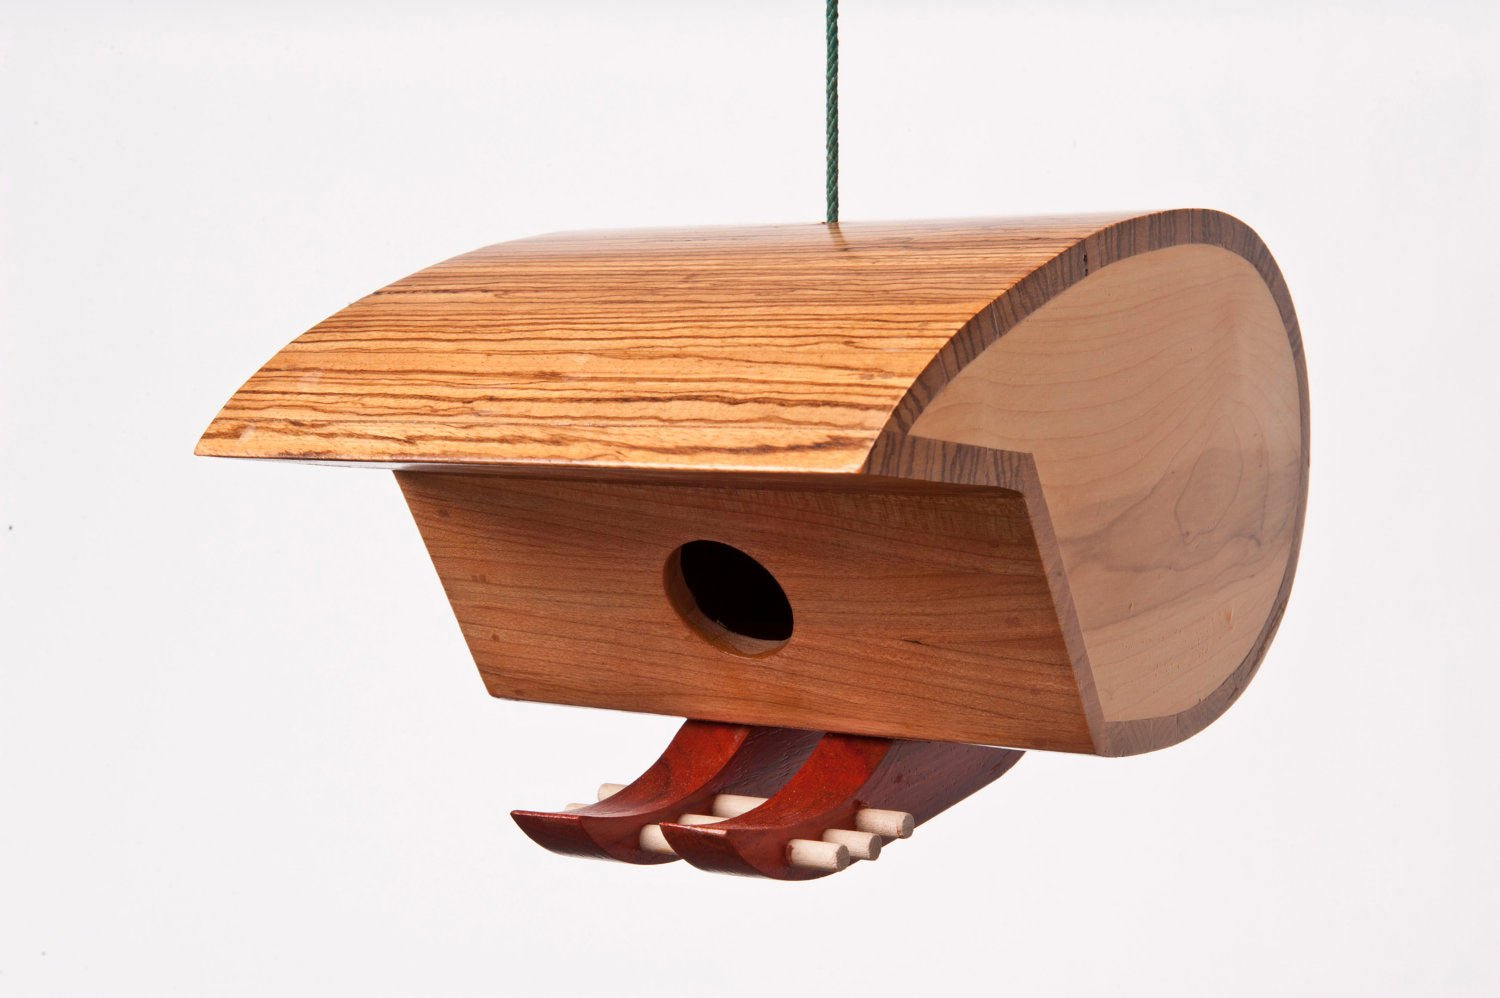 Birdhouses Inspired by Mid-Century Modern Design